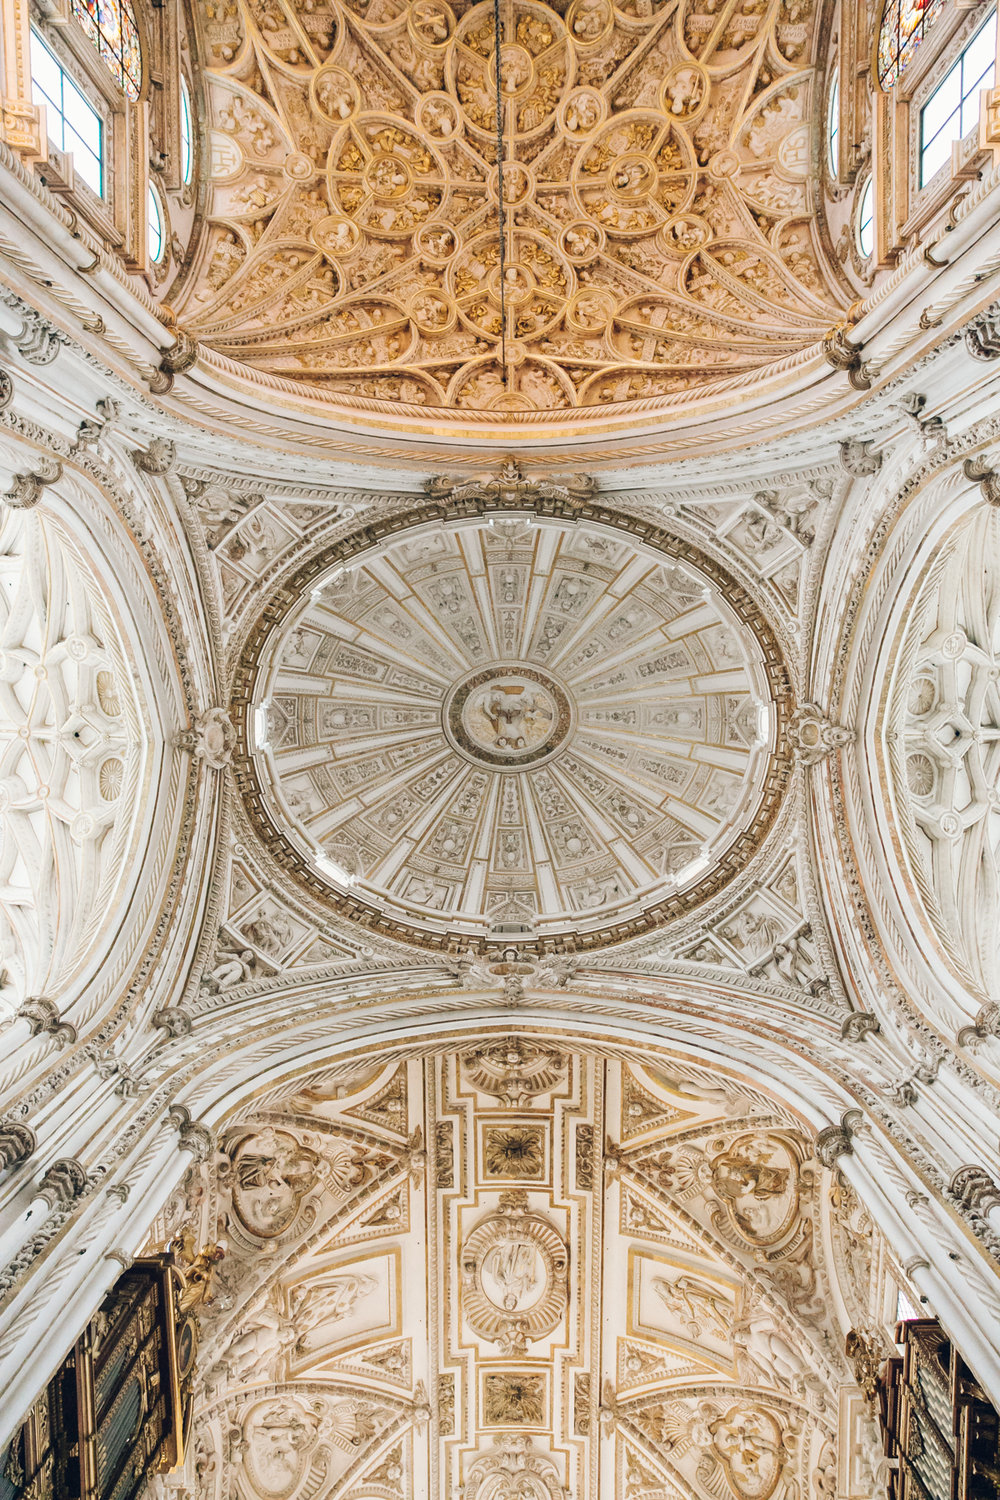 Incredible ceiling in the Mezquita in Cordoba, Andalusia.